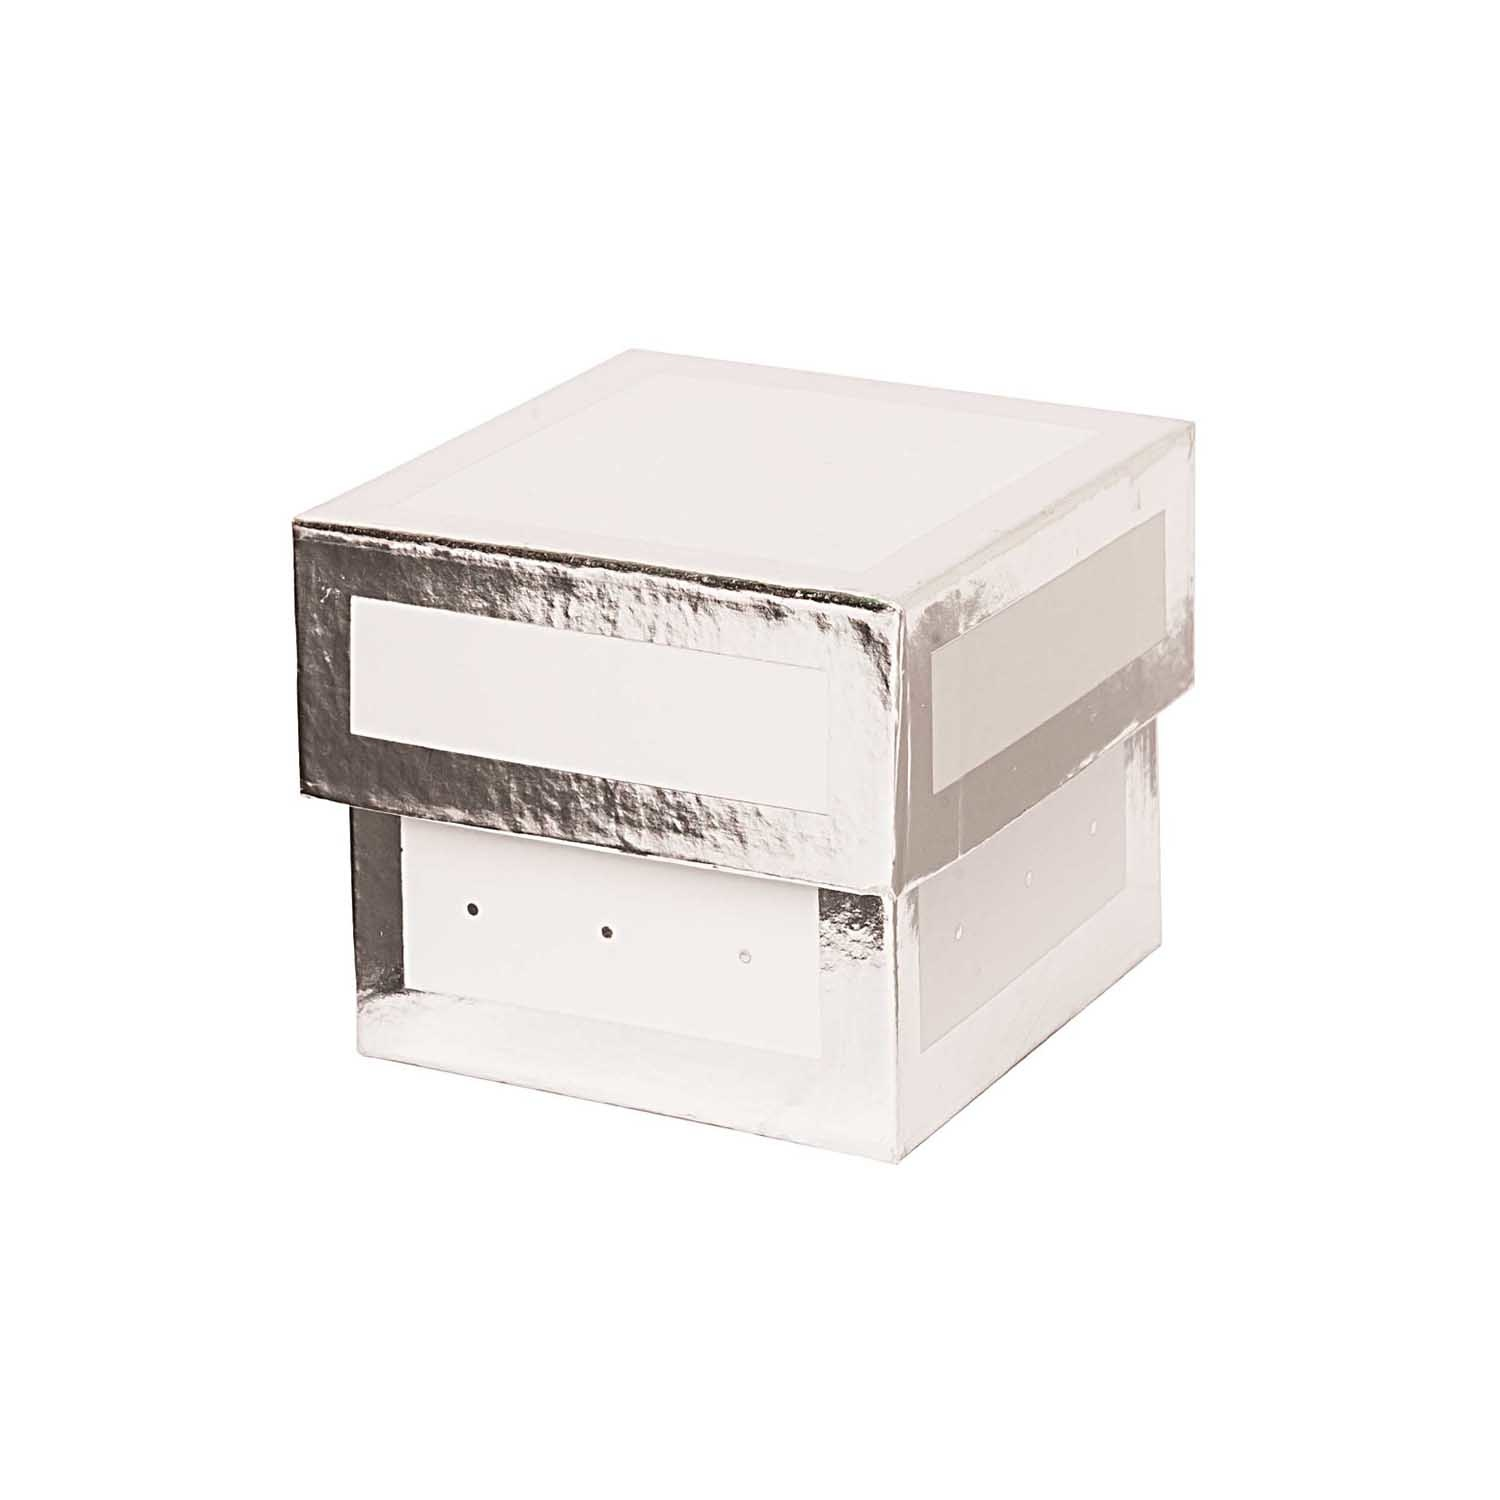 Rico NAY GIFT BOX, WHITE, SQUARE, FSC RECYCLED